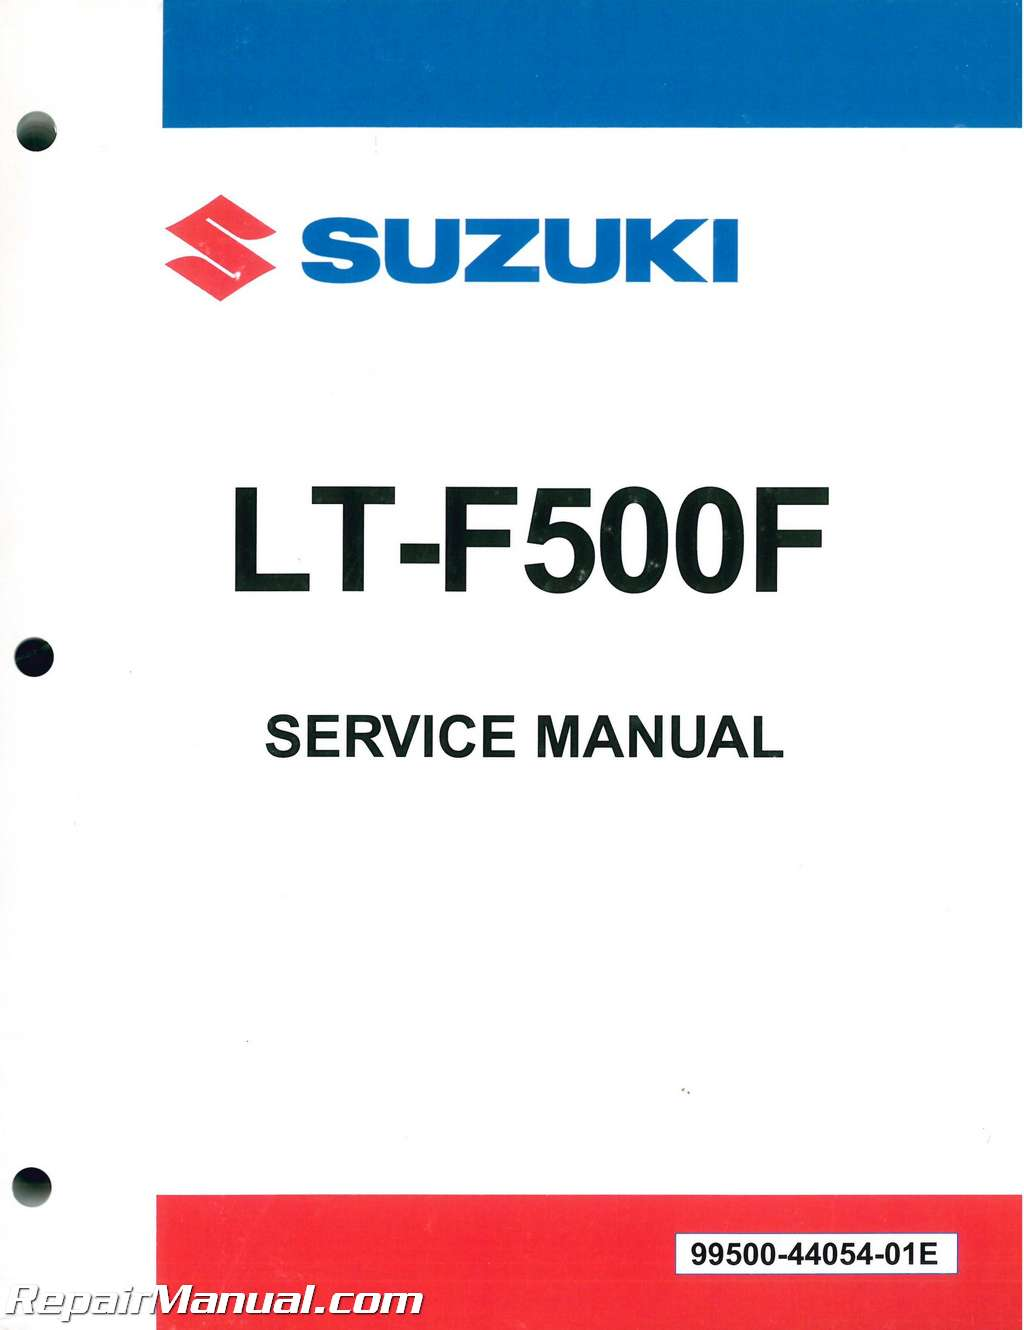 2003 2007 lt f500f vinson 4 4 suzuki atv service manual rh repairmanual com suzuki atv 400 service manual atv suzuki lta700 king quad 700 service manual .pdf